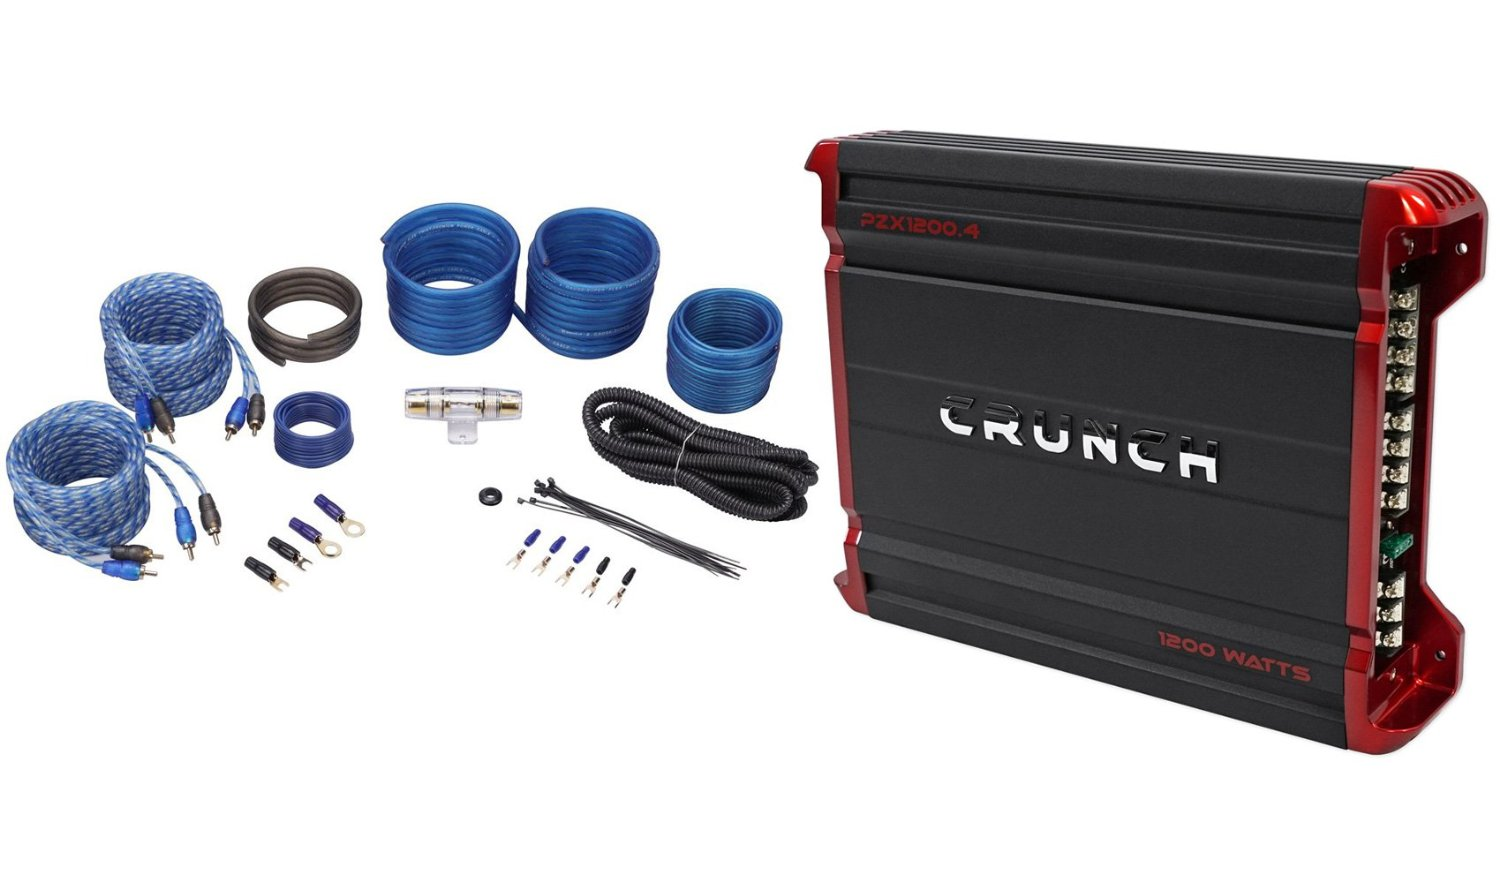 Buy Package Brand New Crunch Pzt5002 500 Watt 2 Channel Bridgeable Best Wiring Kits For Car Audio Pzx12004 1200 4 Powerful Amplifier Rockville Rwk82 8 Gauge Complete Wire Kit With Rca Cable